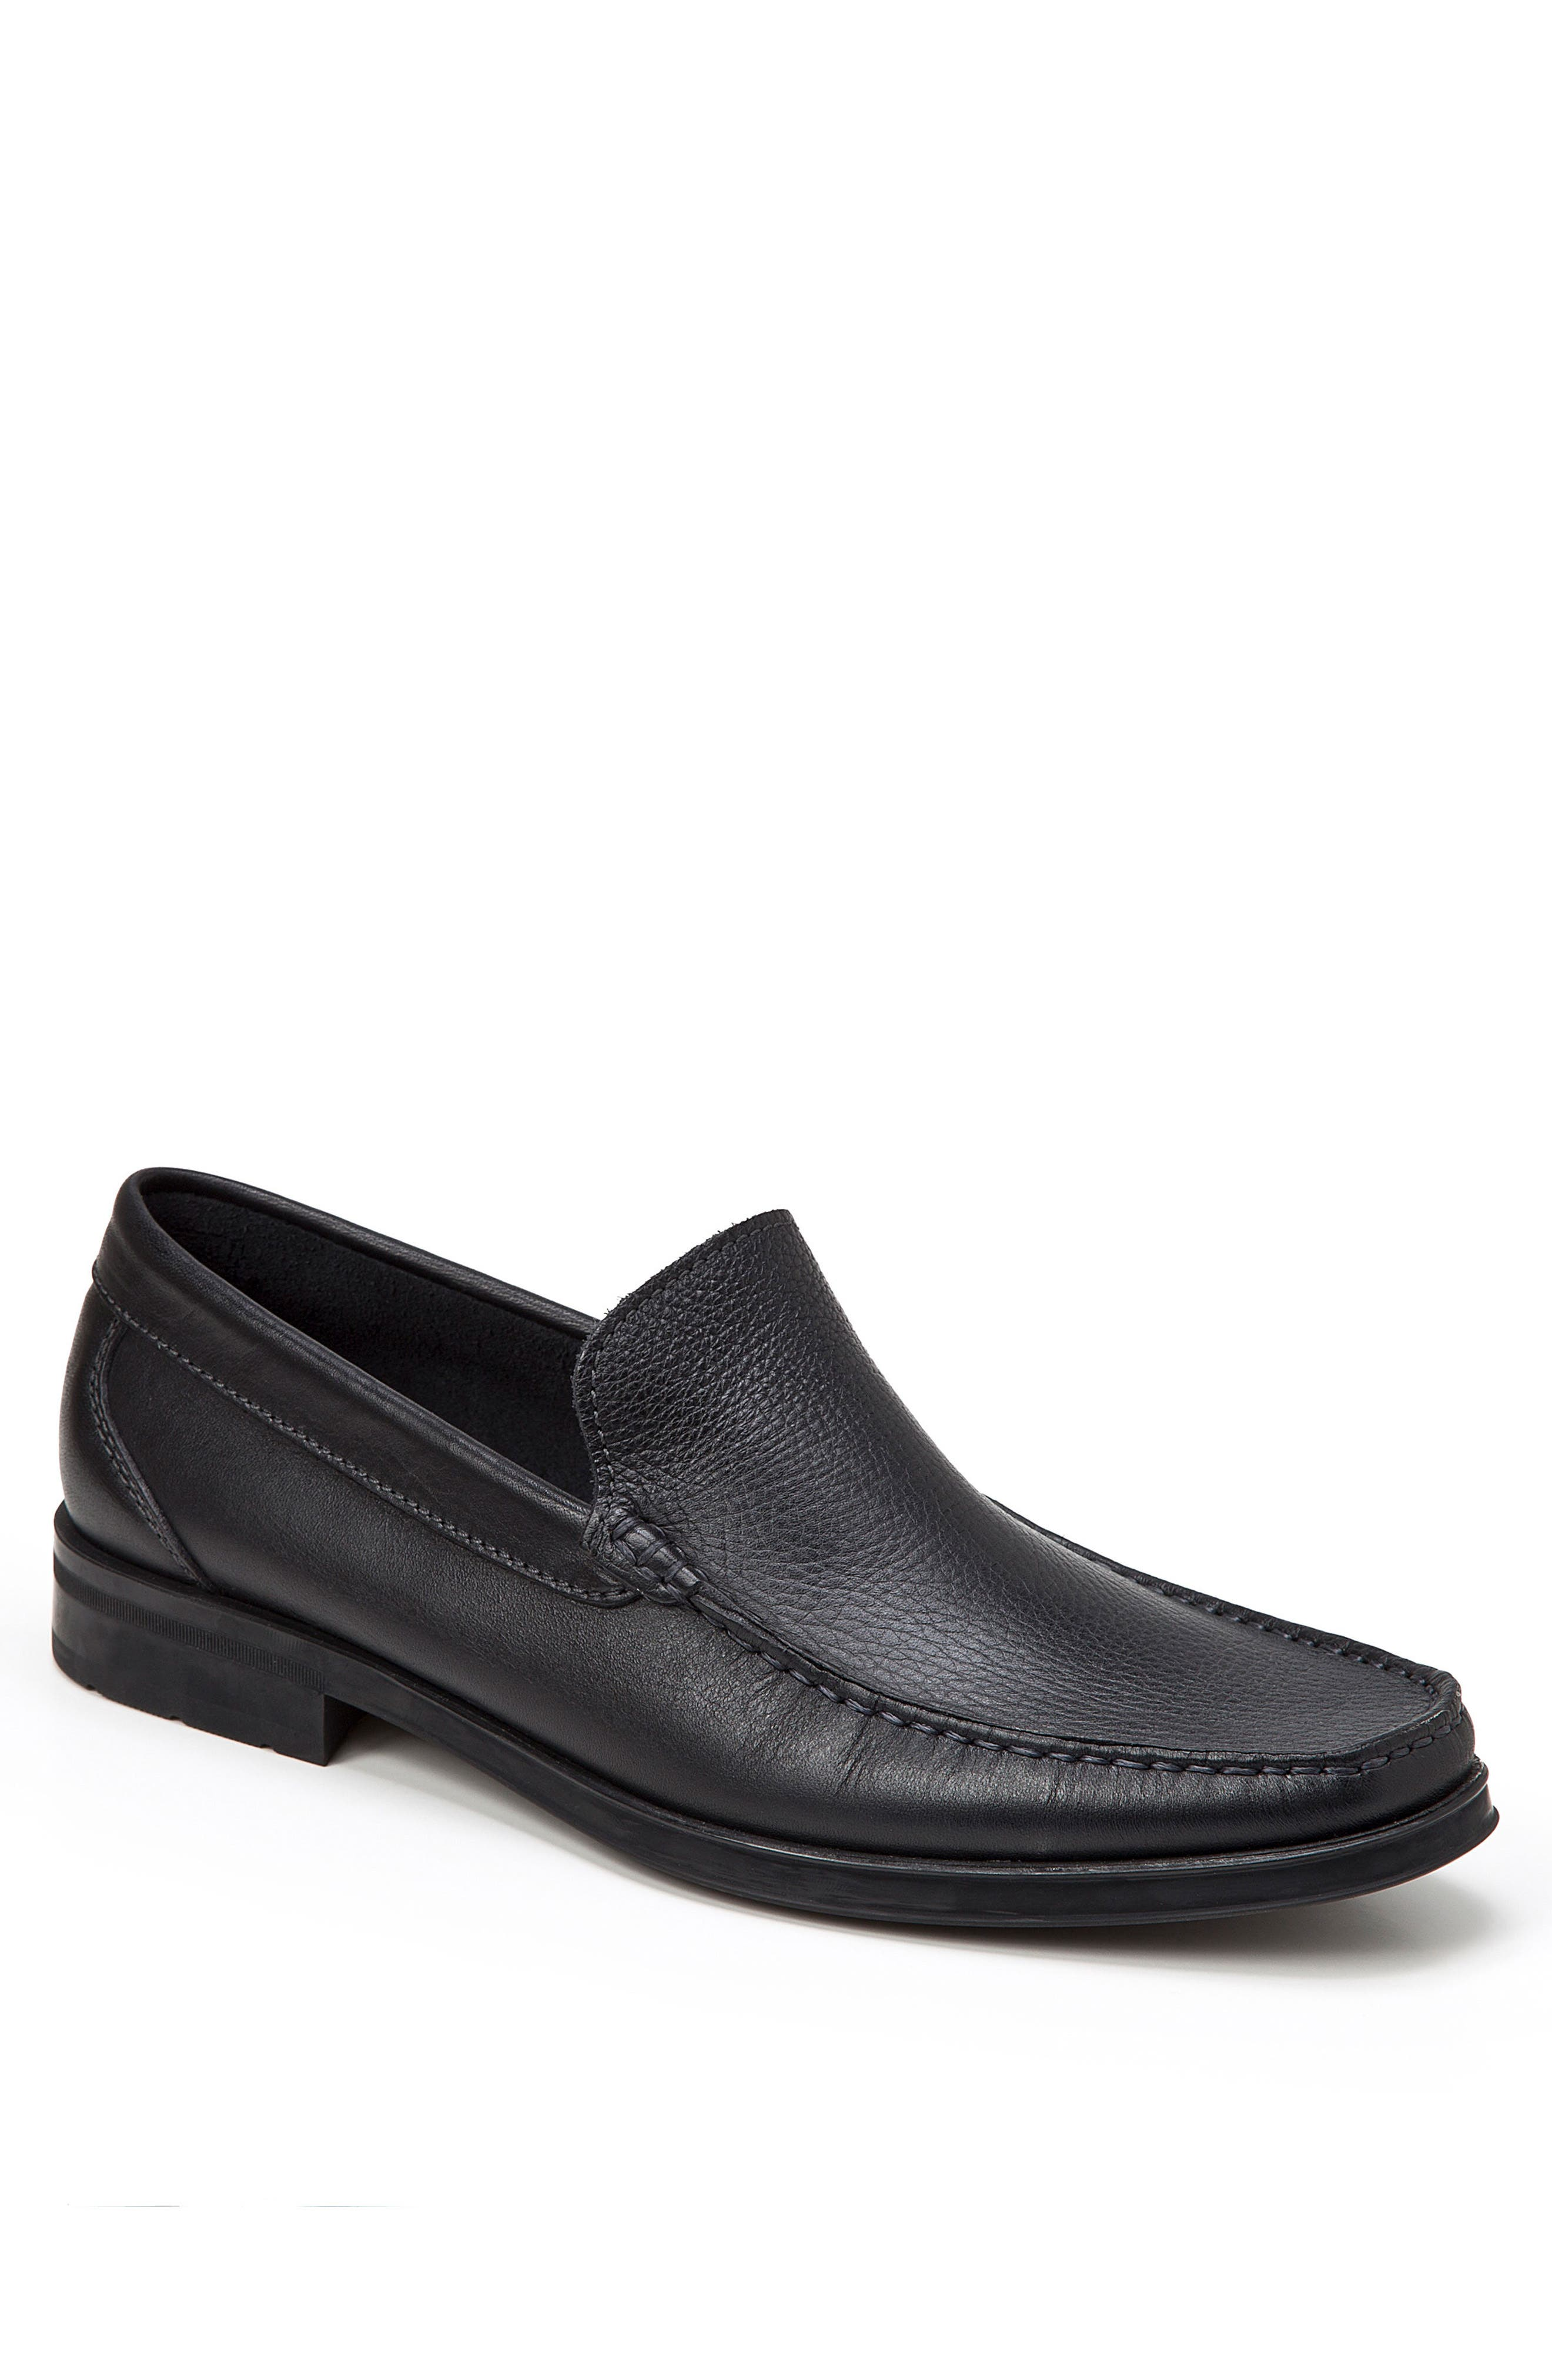 Sandro Moscoloni Euardo Moc Toe Loafer (Men)